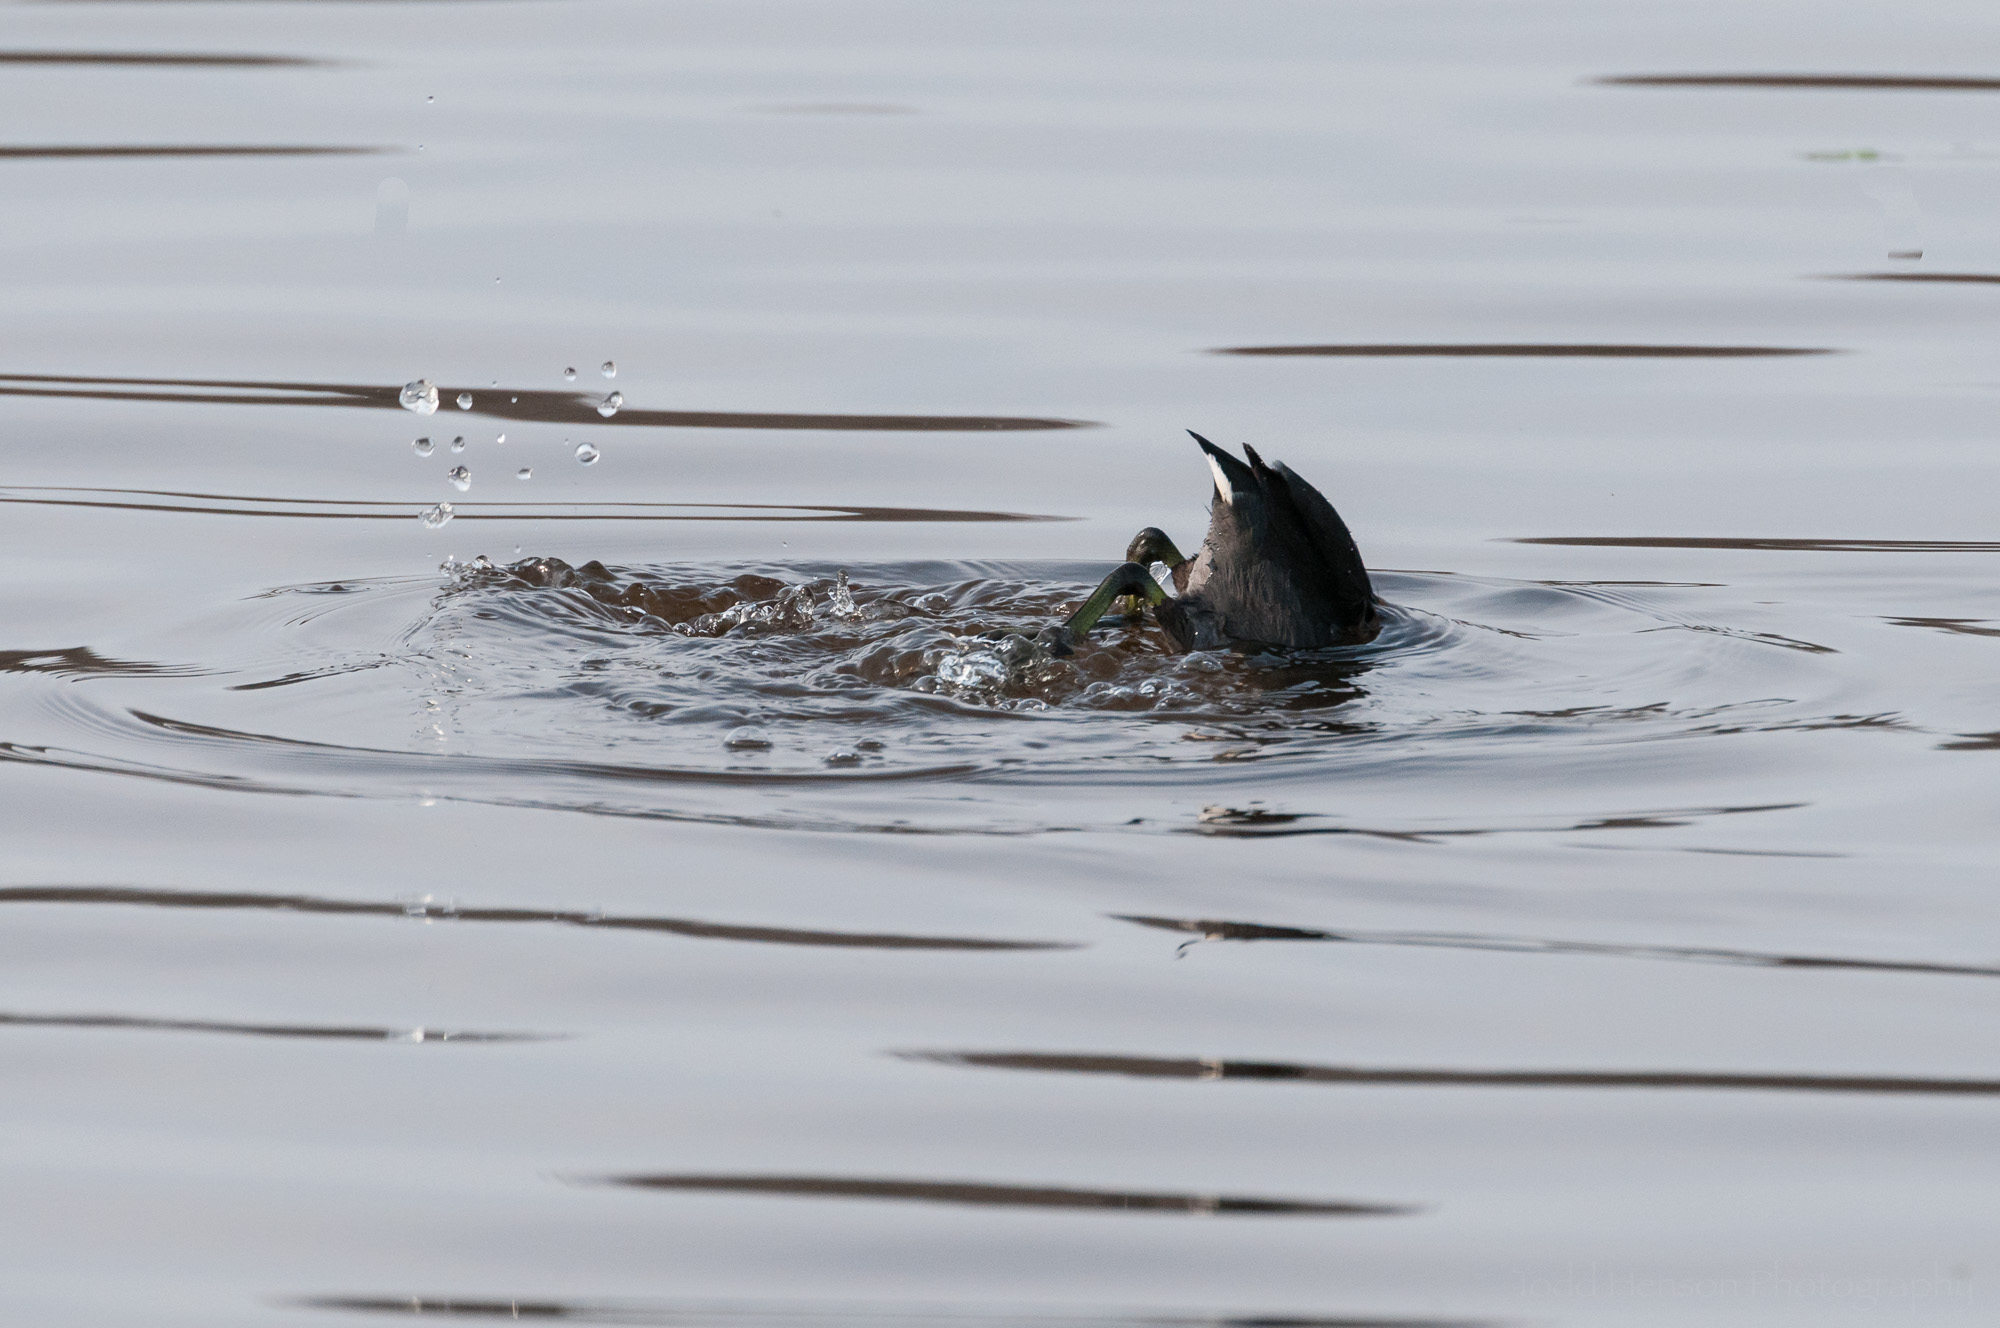 American Coot just diving beneath the surface